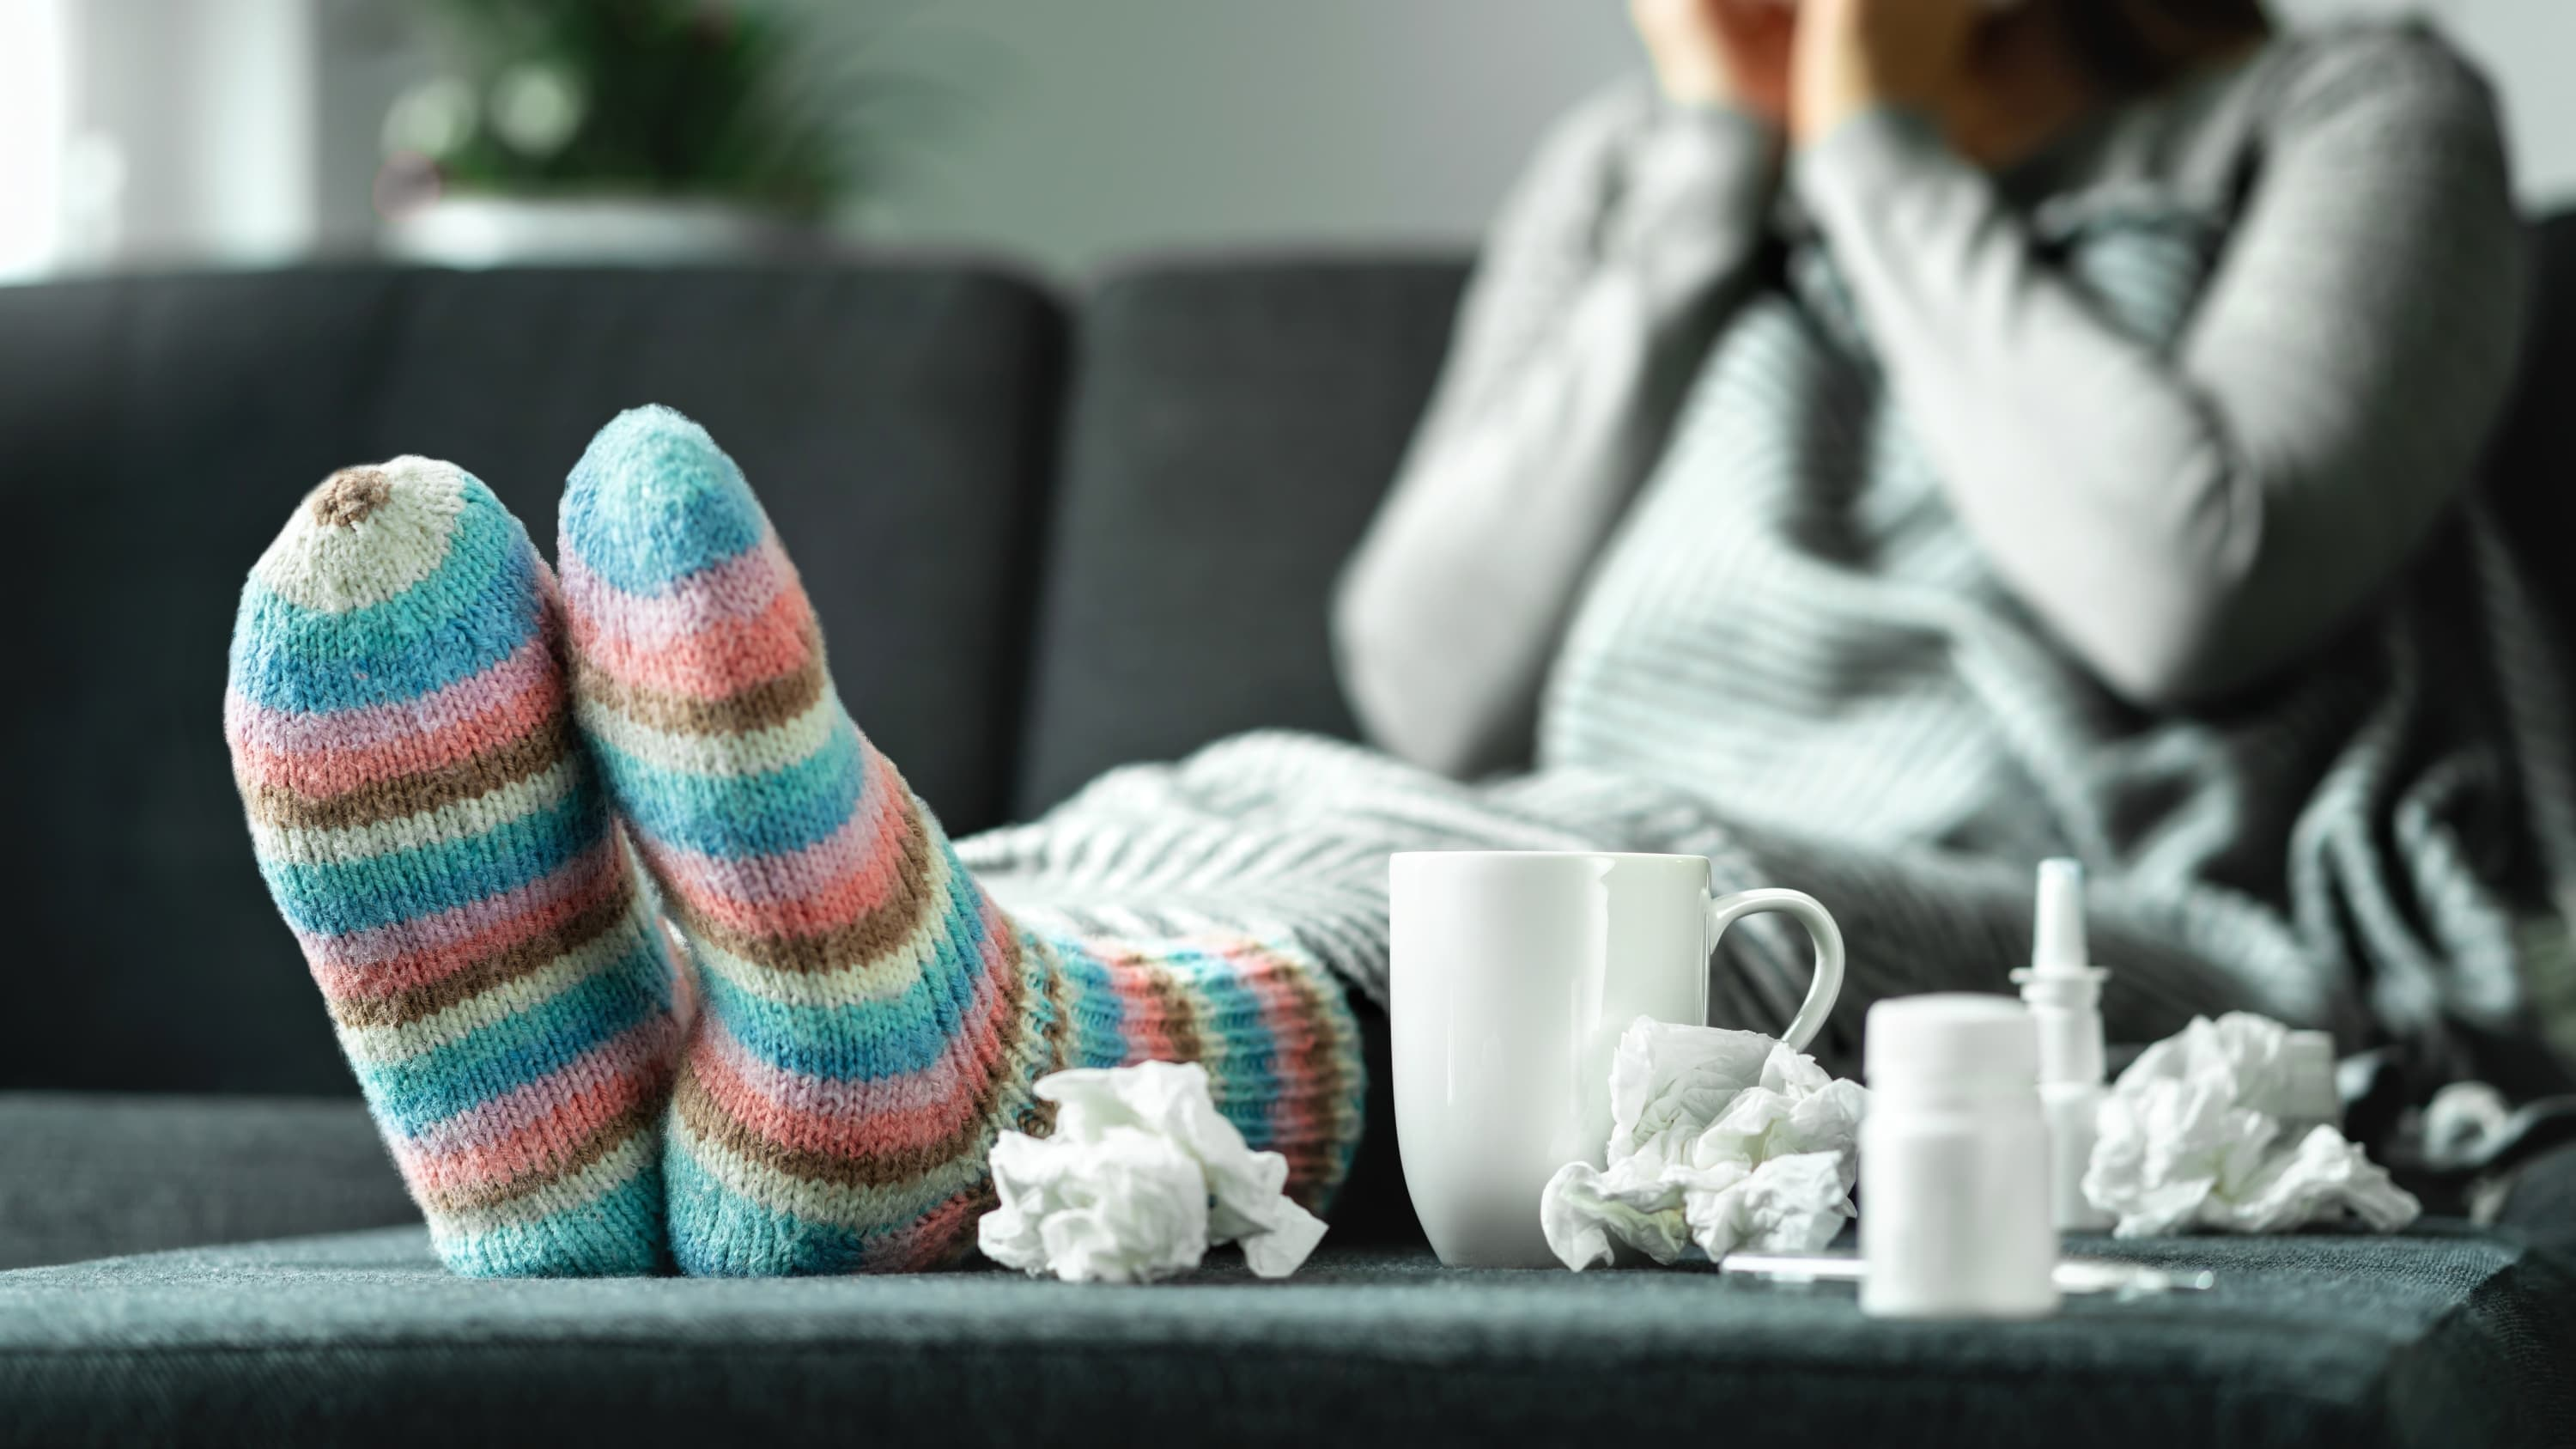 person on the couch sick with cold, flu, or covid-19